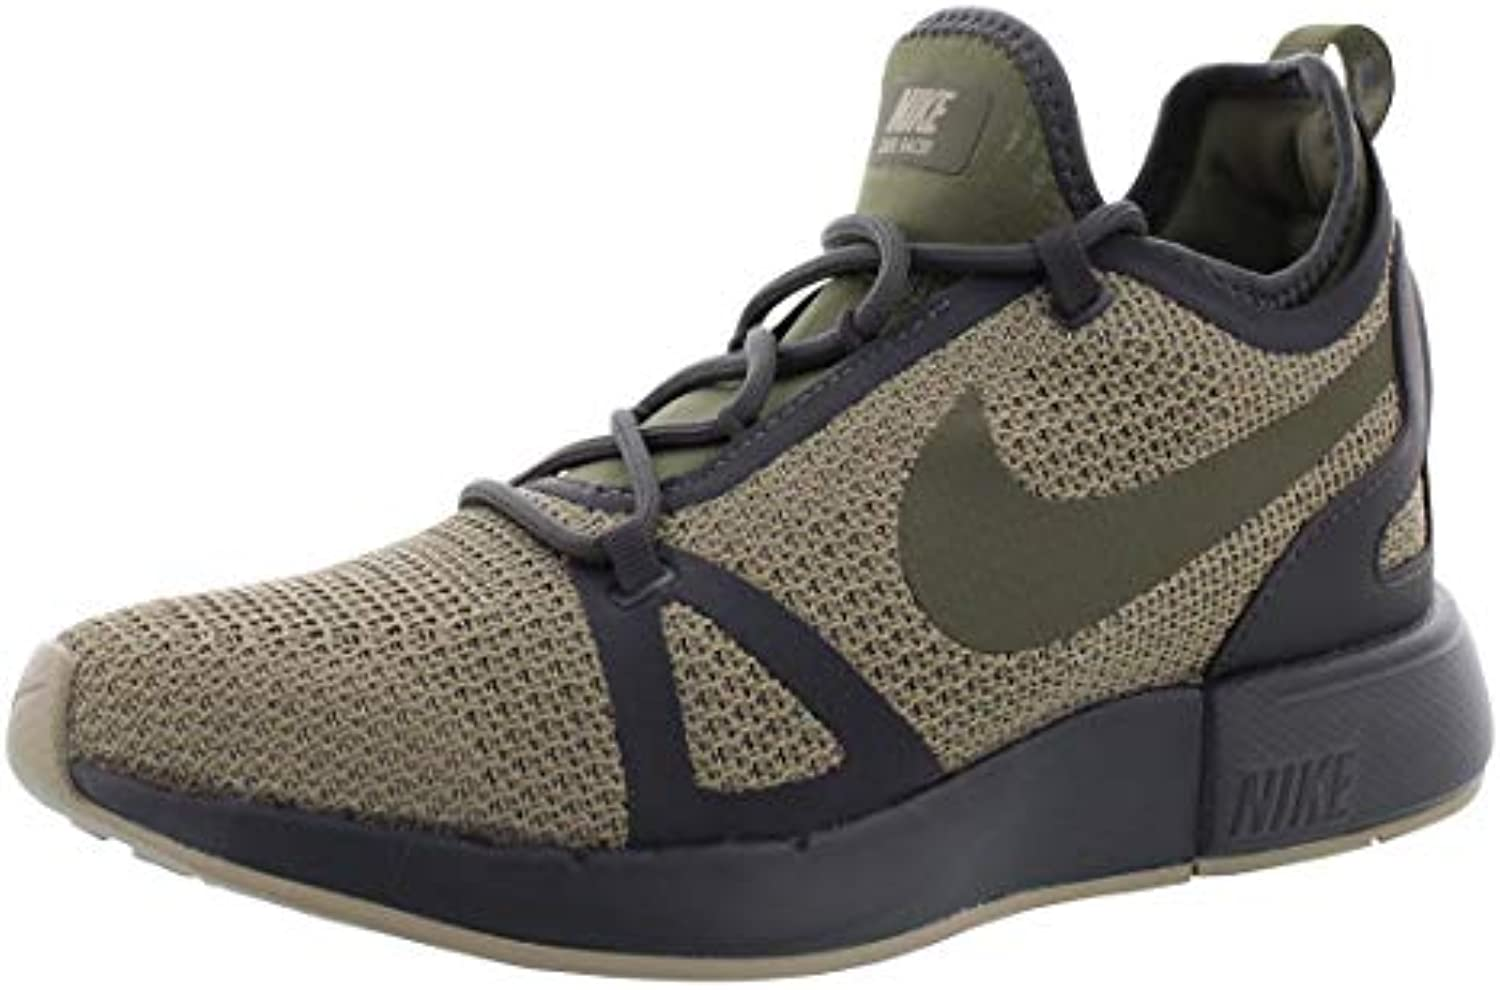 Nike Men's Duel Racer Casual Shoes Shoes Shoes Sneakers Kicks Khaki Medium Olive (11.5) | Aspetto Gradevole  | Up-to-date Styling  | Uomo/Donne Scarpa  | Scolaro/Signora Scarpa  0c6a31